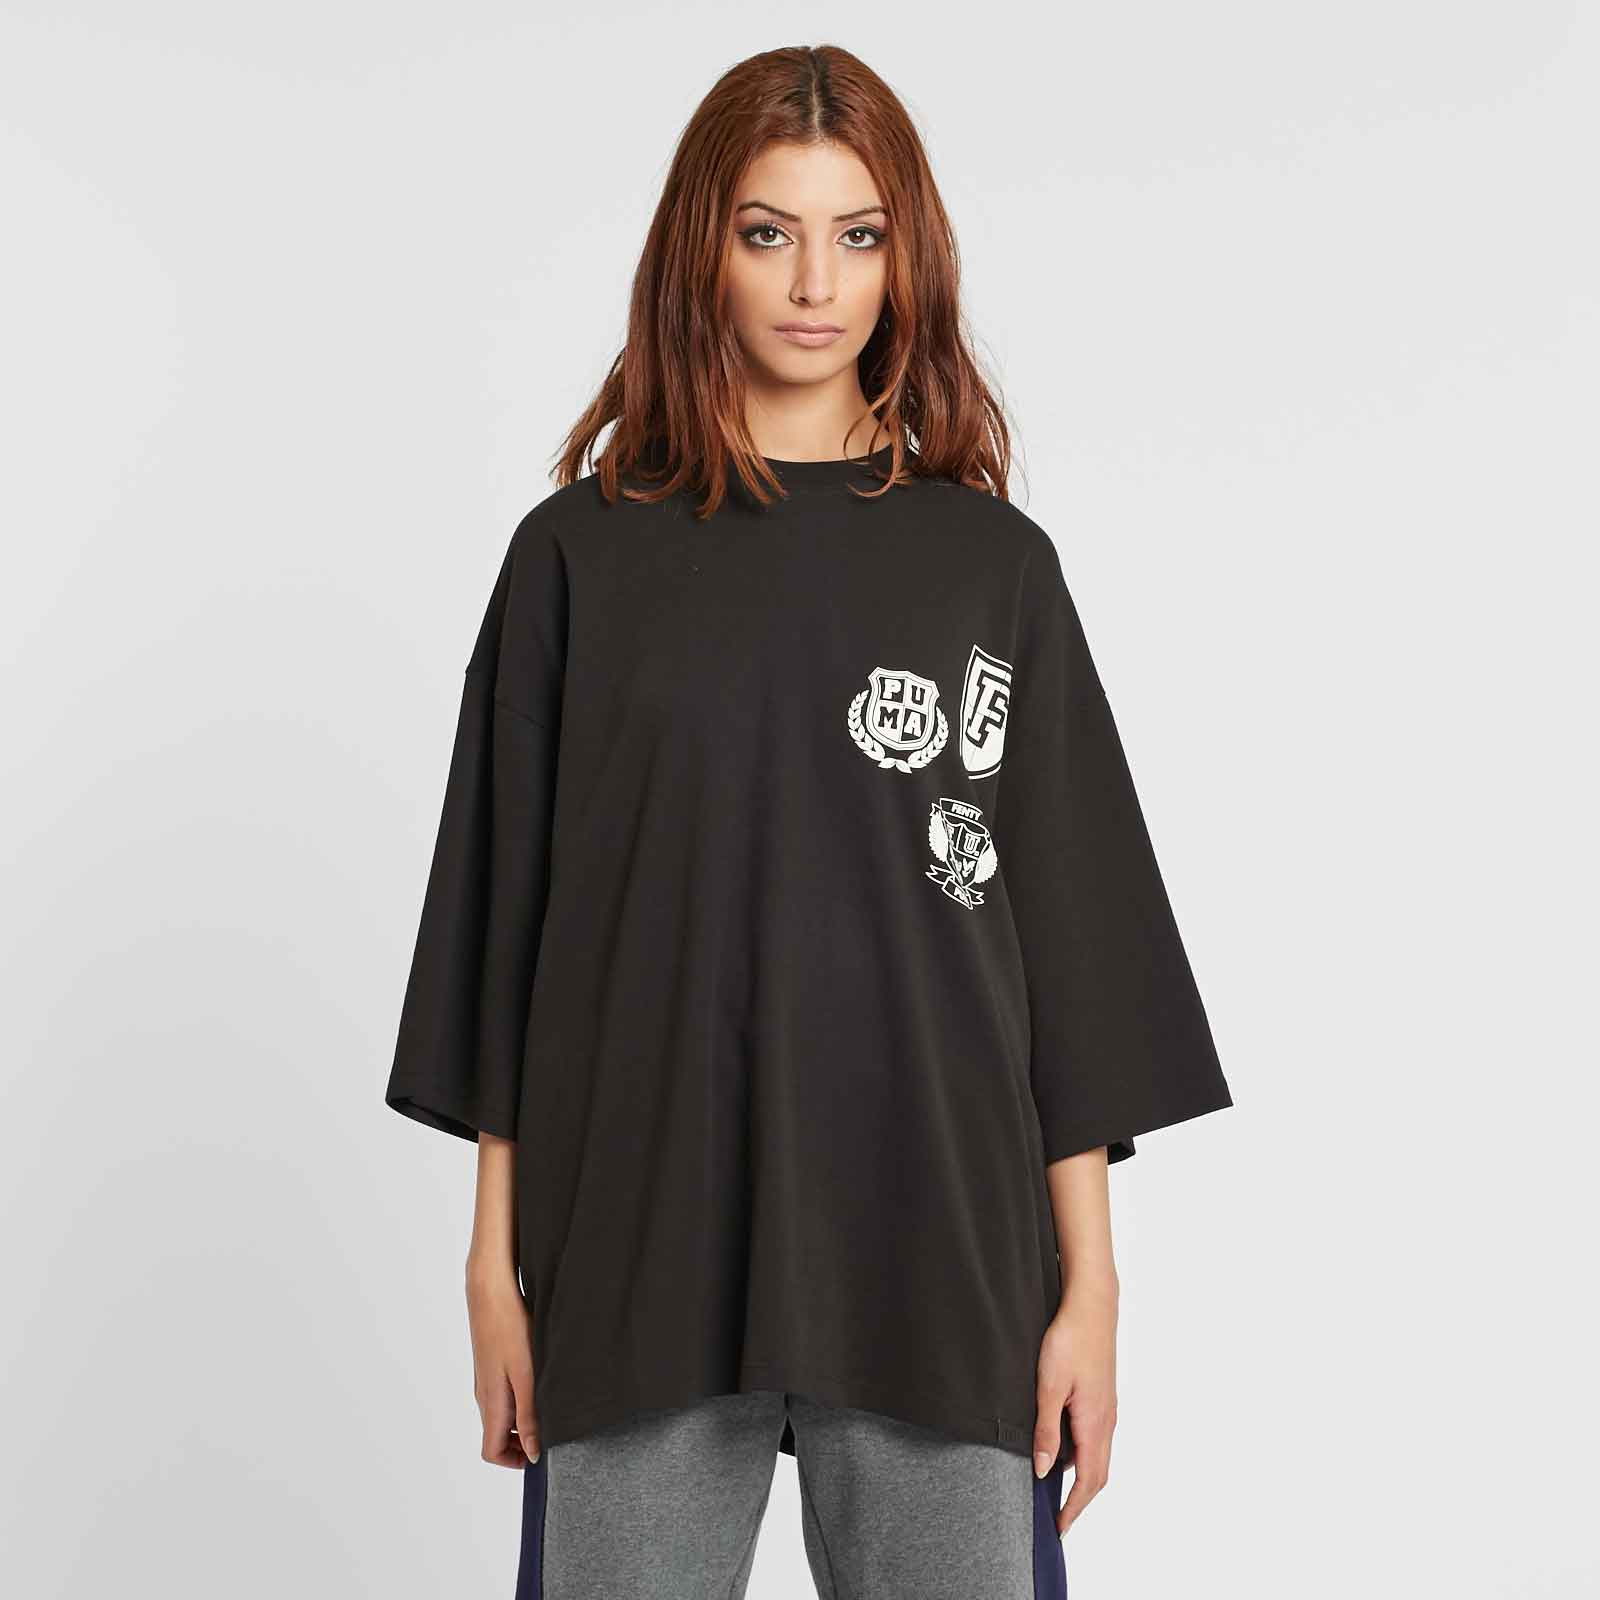 reputable site f5acf 18a13 Puma Ss Crew Neck Tee - 575876-01 - Sneakersnstuff ...